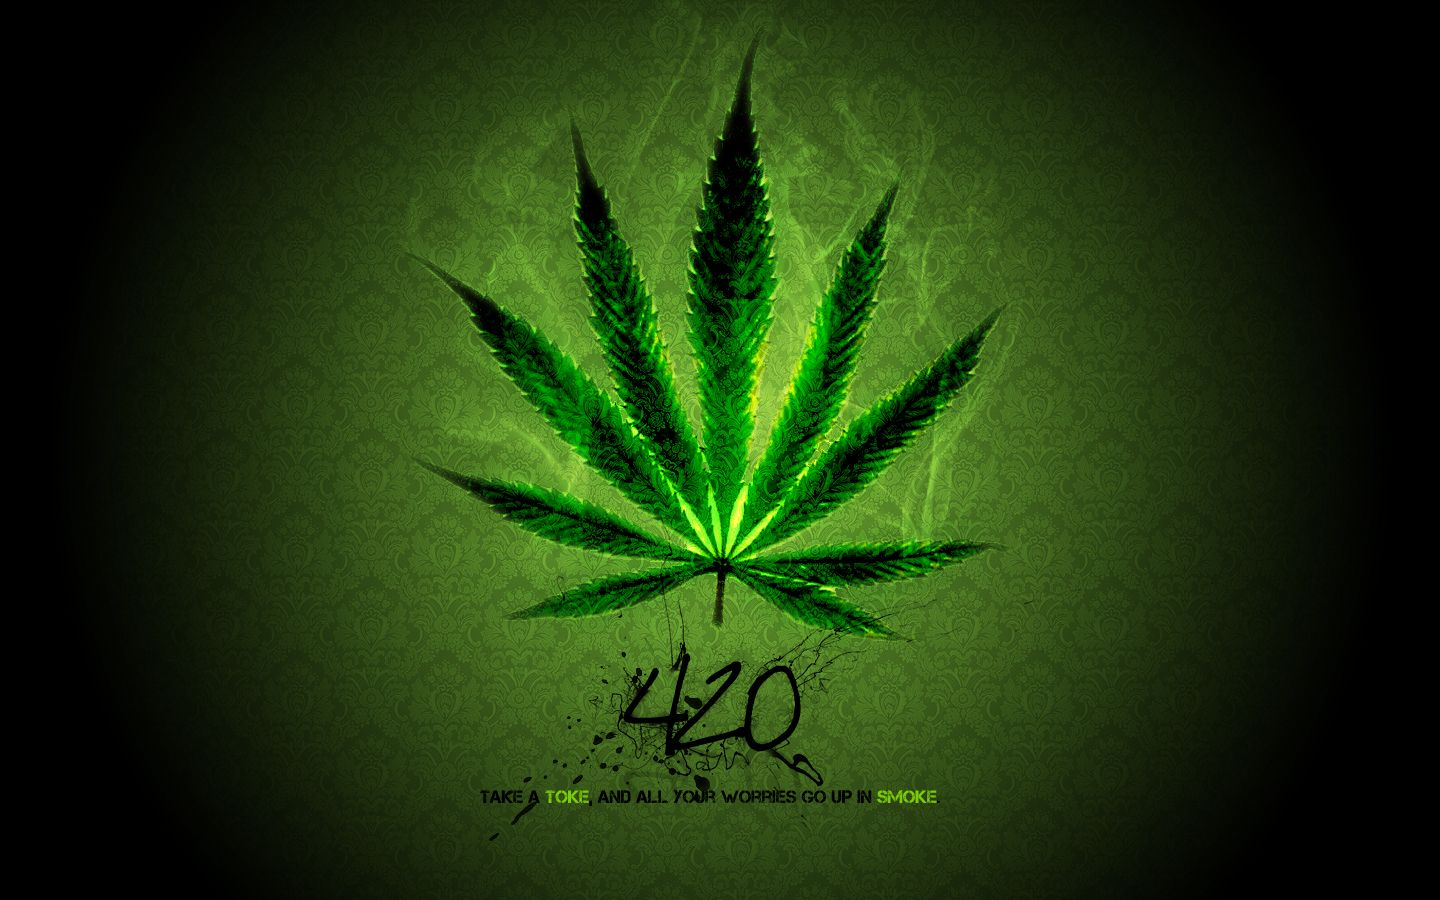 1440x900 Download the Quote For 420 Wallpaper, Quote For 420 iPhone Wallpaper ...